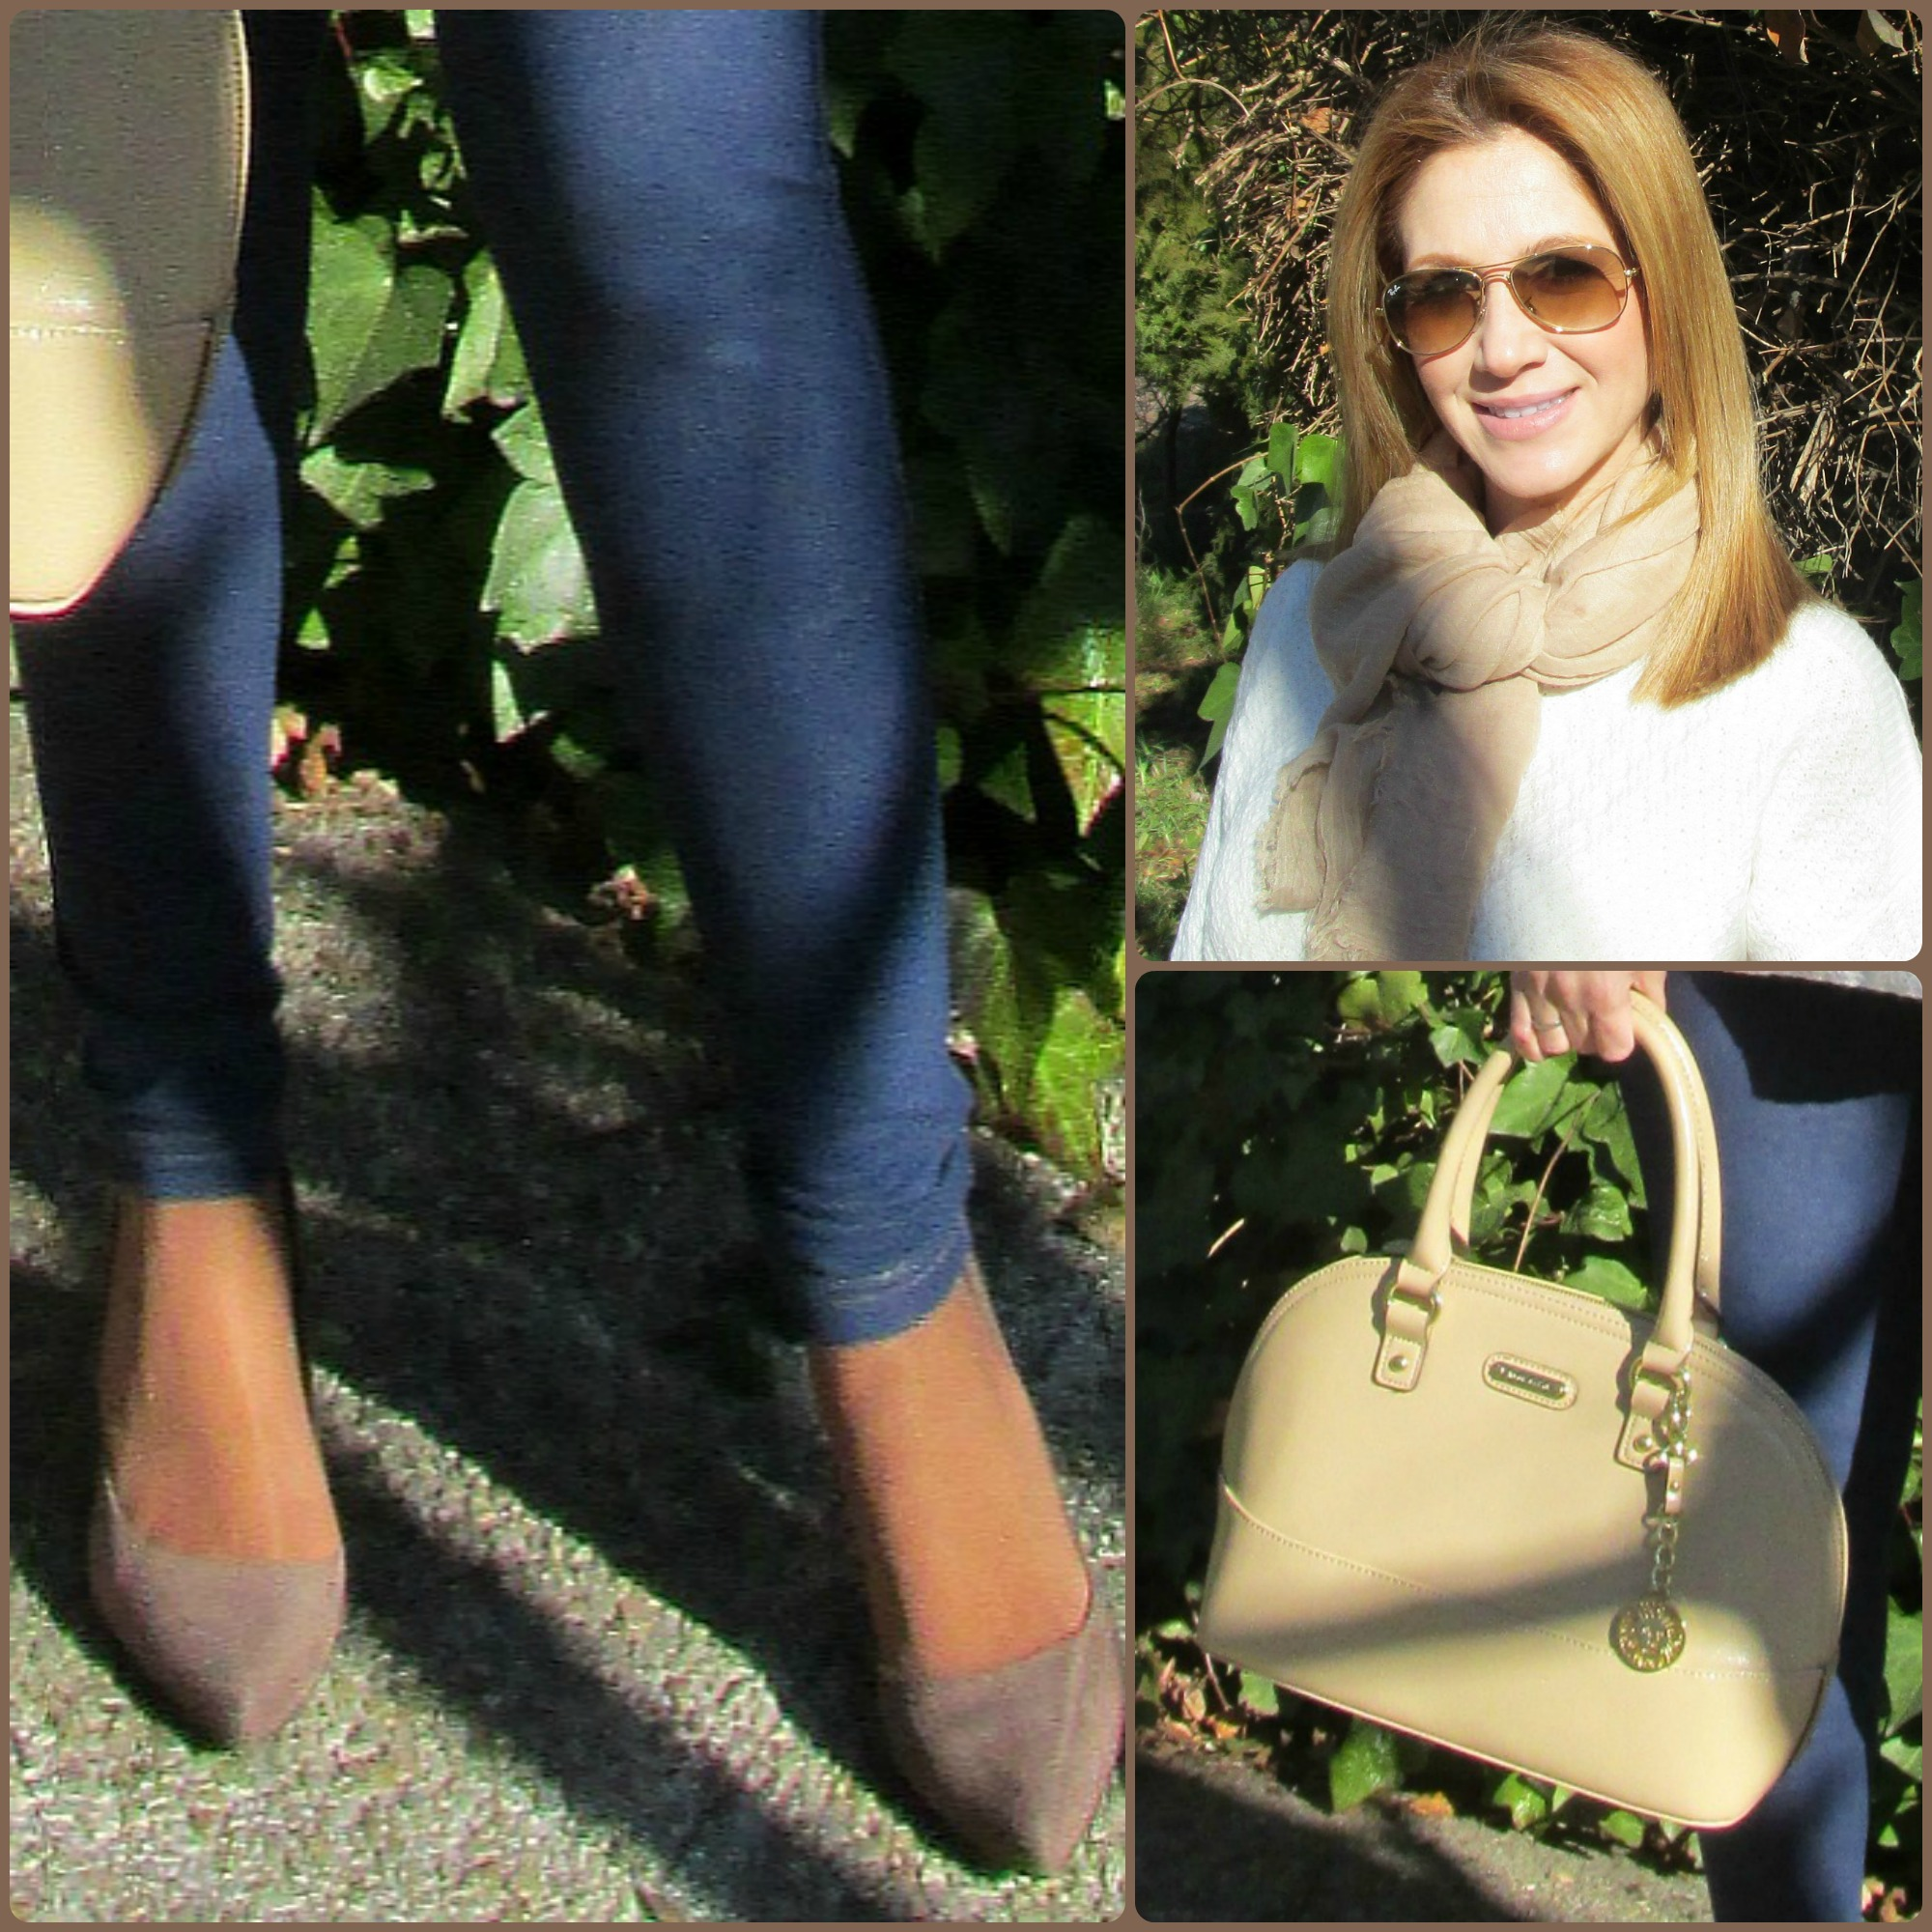 Jeans: H&M slim fit mama; Throw: PARFOIS; Jersey: SFERA (Winter ´16-´17); Shoes: MARYPAZ; Bag: ANNE KLEIN; Sunglasses: RAY-BAN.